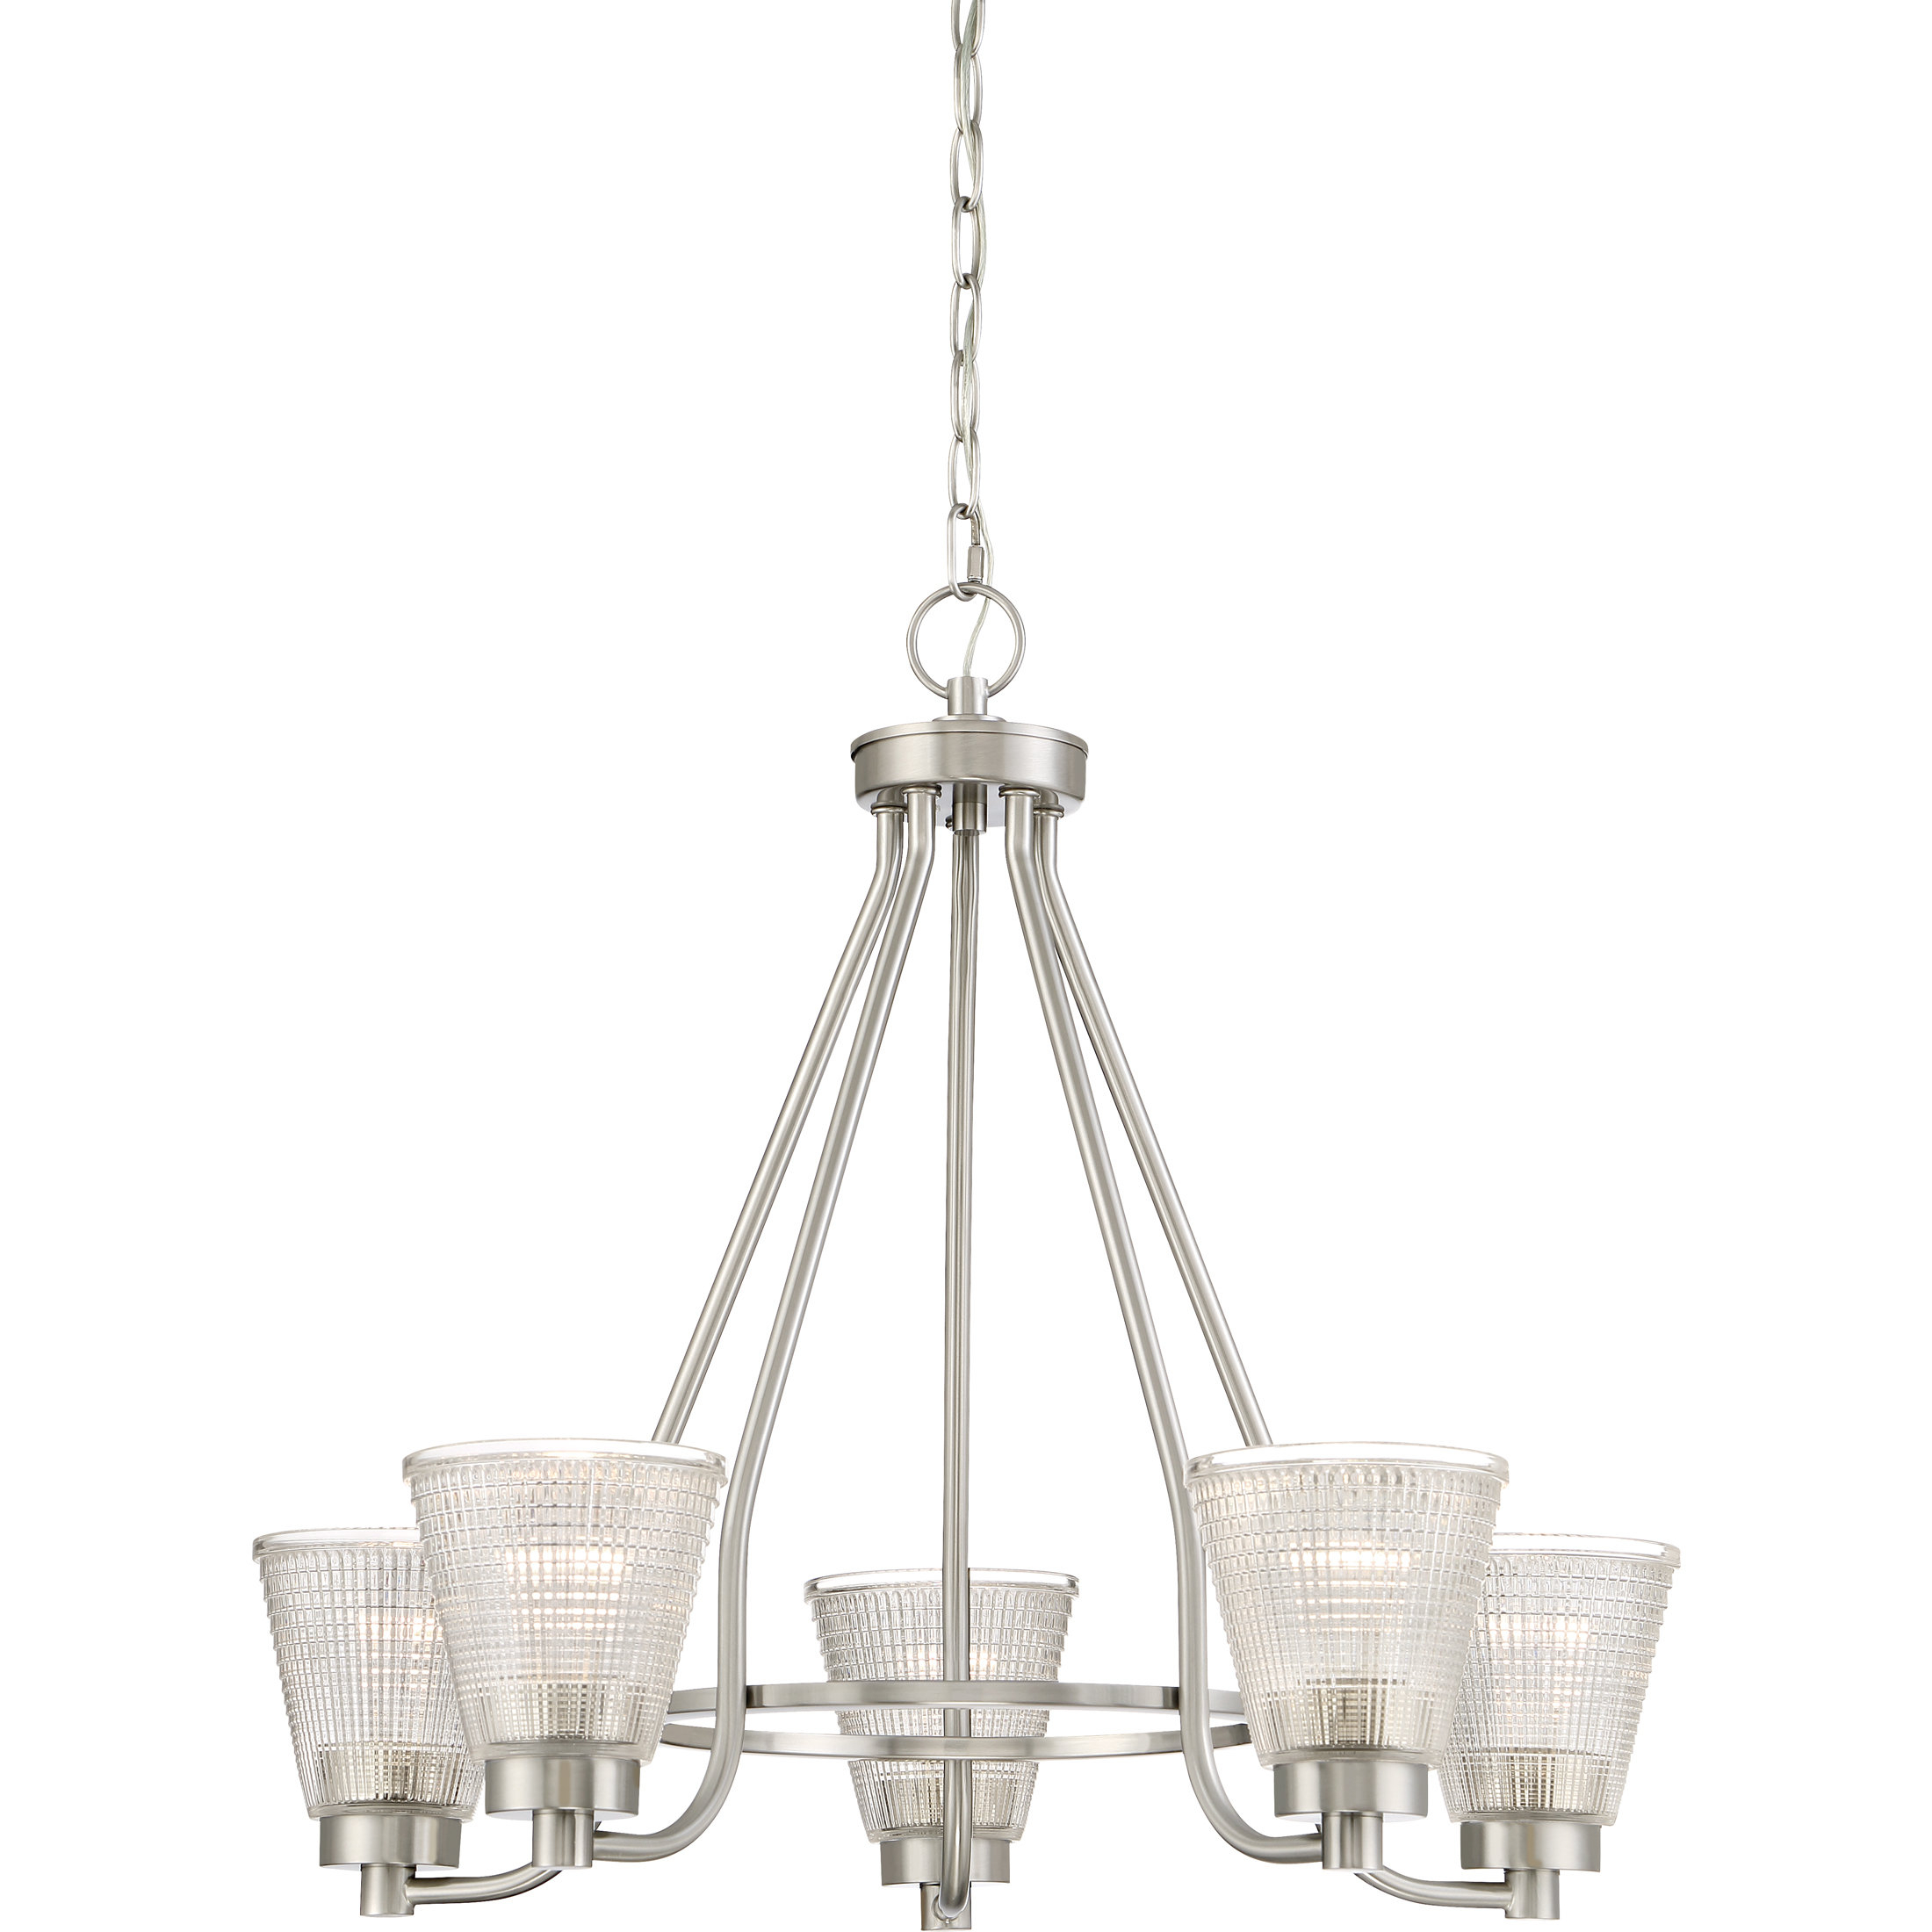 Haskett 5 Light Shaded Chandelier Intended For Widely Used Newent 5 Light Shaded Chandeliers (View 5 of 20)